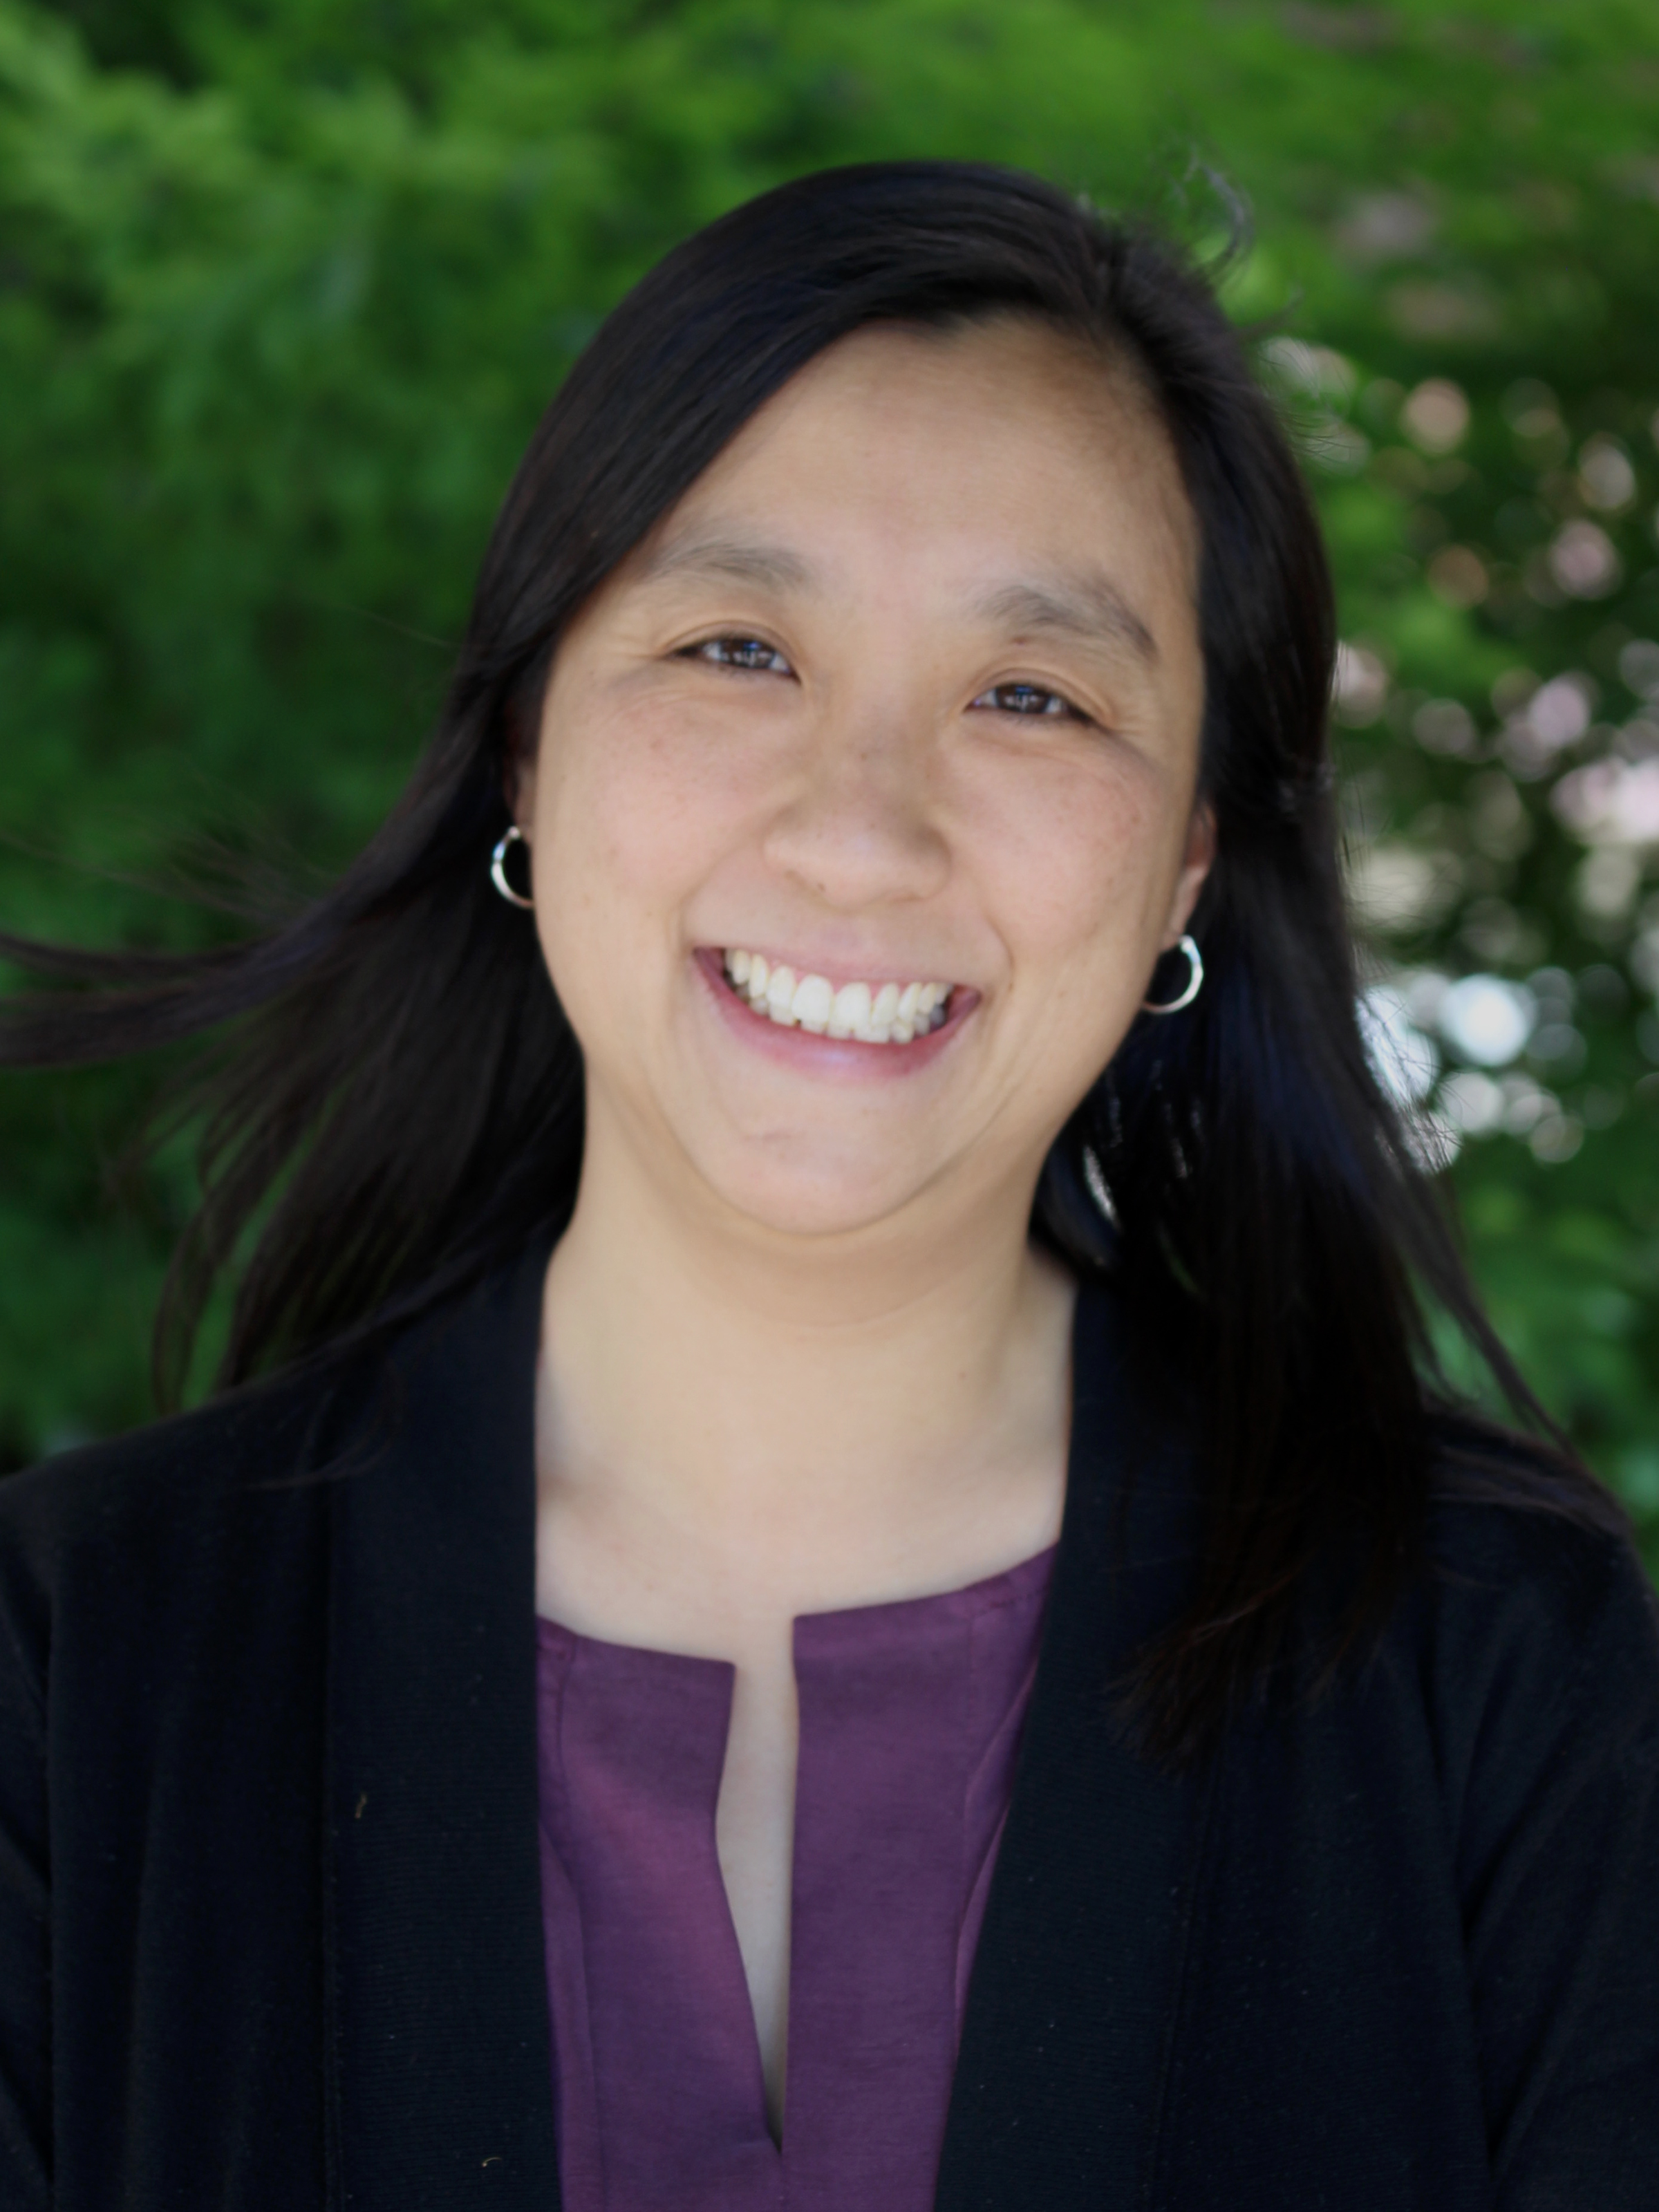 Kristen Kwan, PhD. Assistant Professor.    Kristen is a native of Southern California, where she grew up in Agoura Hills, a suburb of Los Angeles.  She attended Stanford University, majoring in Biological Sciences, and then moved to Harvard Medical School for her PhD in Cell and Developmental Biology.   When not in the lab, Kristen can be found chasing her kids, watching football, knitting, and trying out new restaurants.